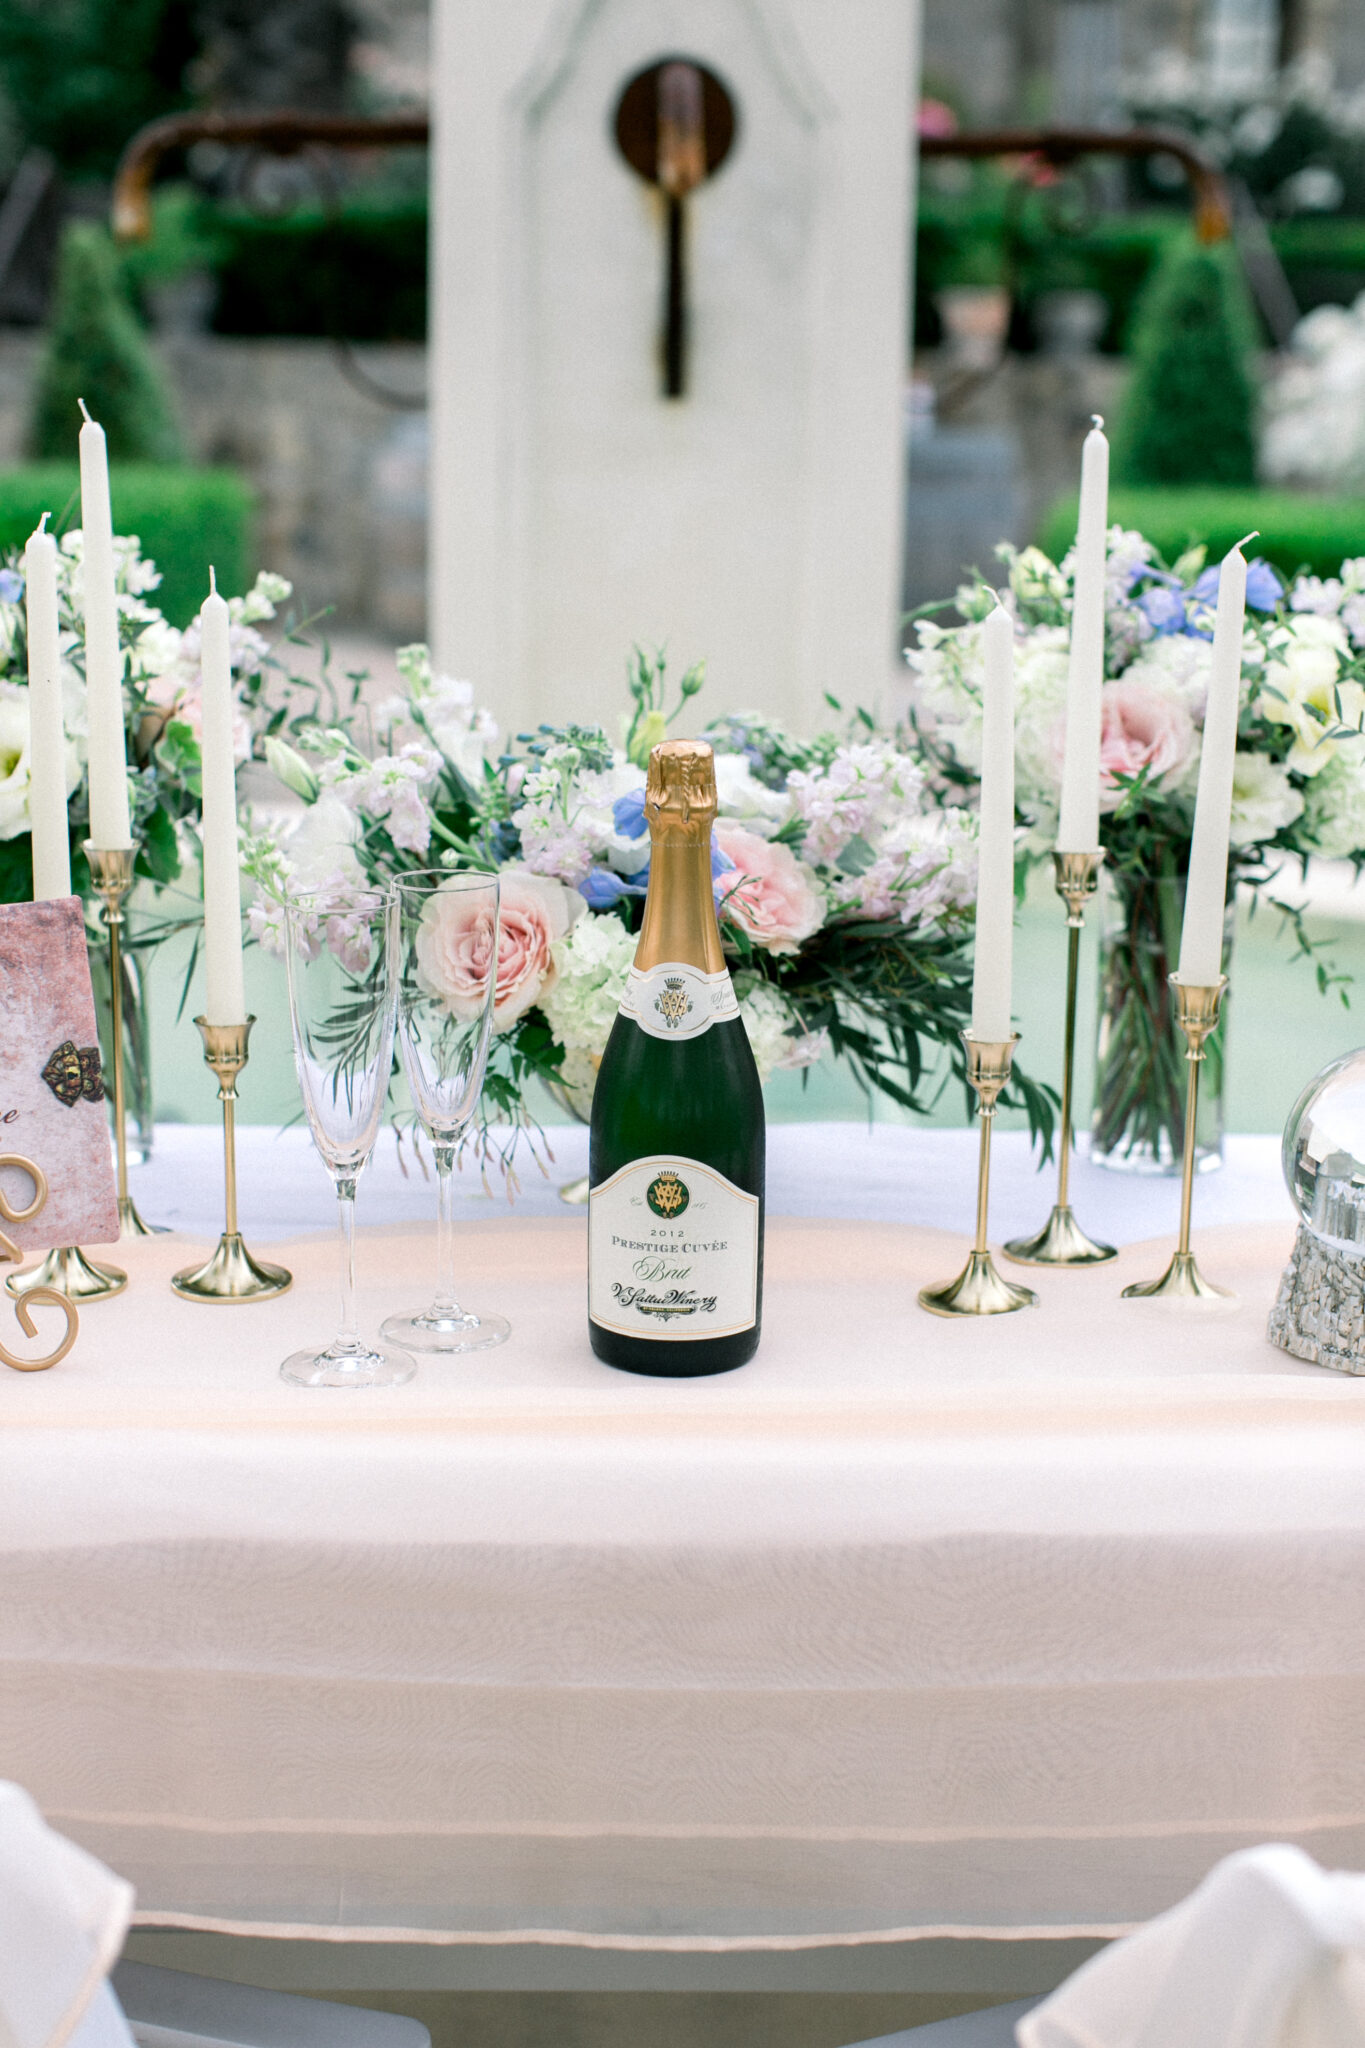 champagne on a romantic table